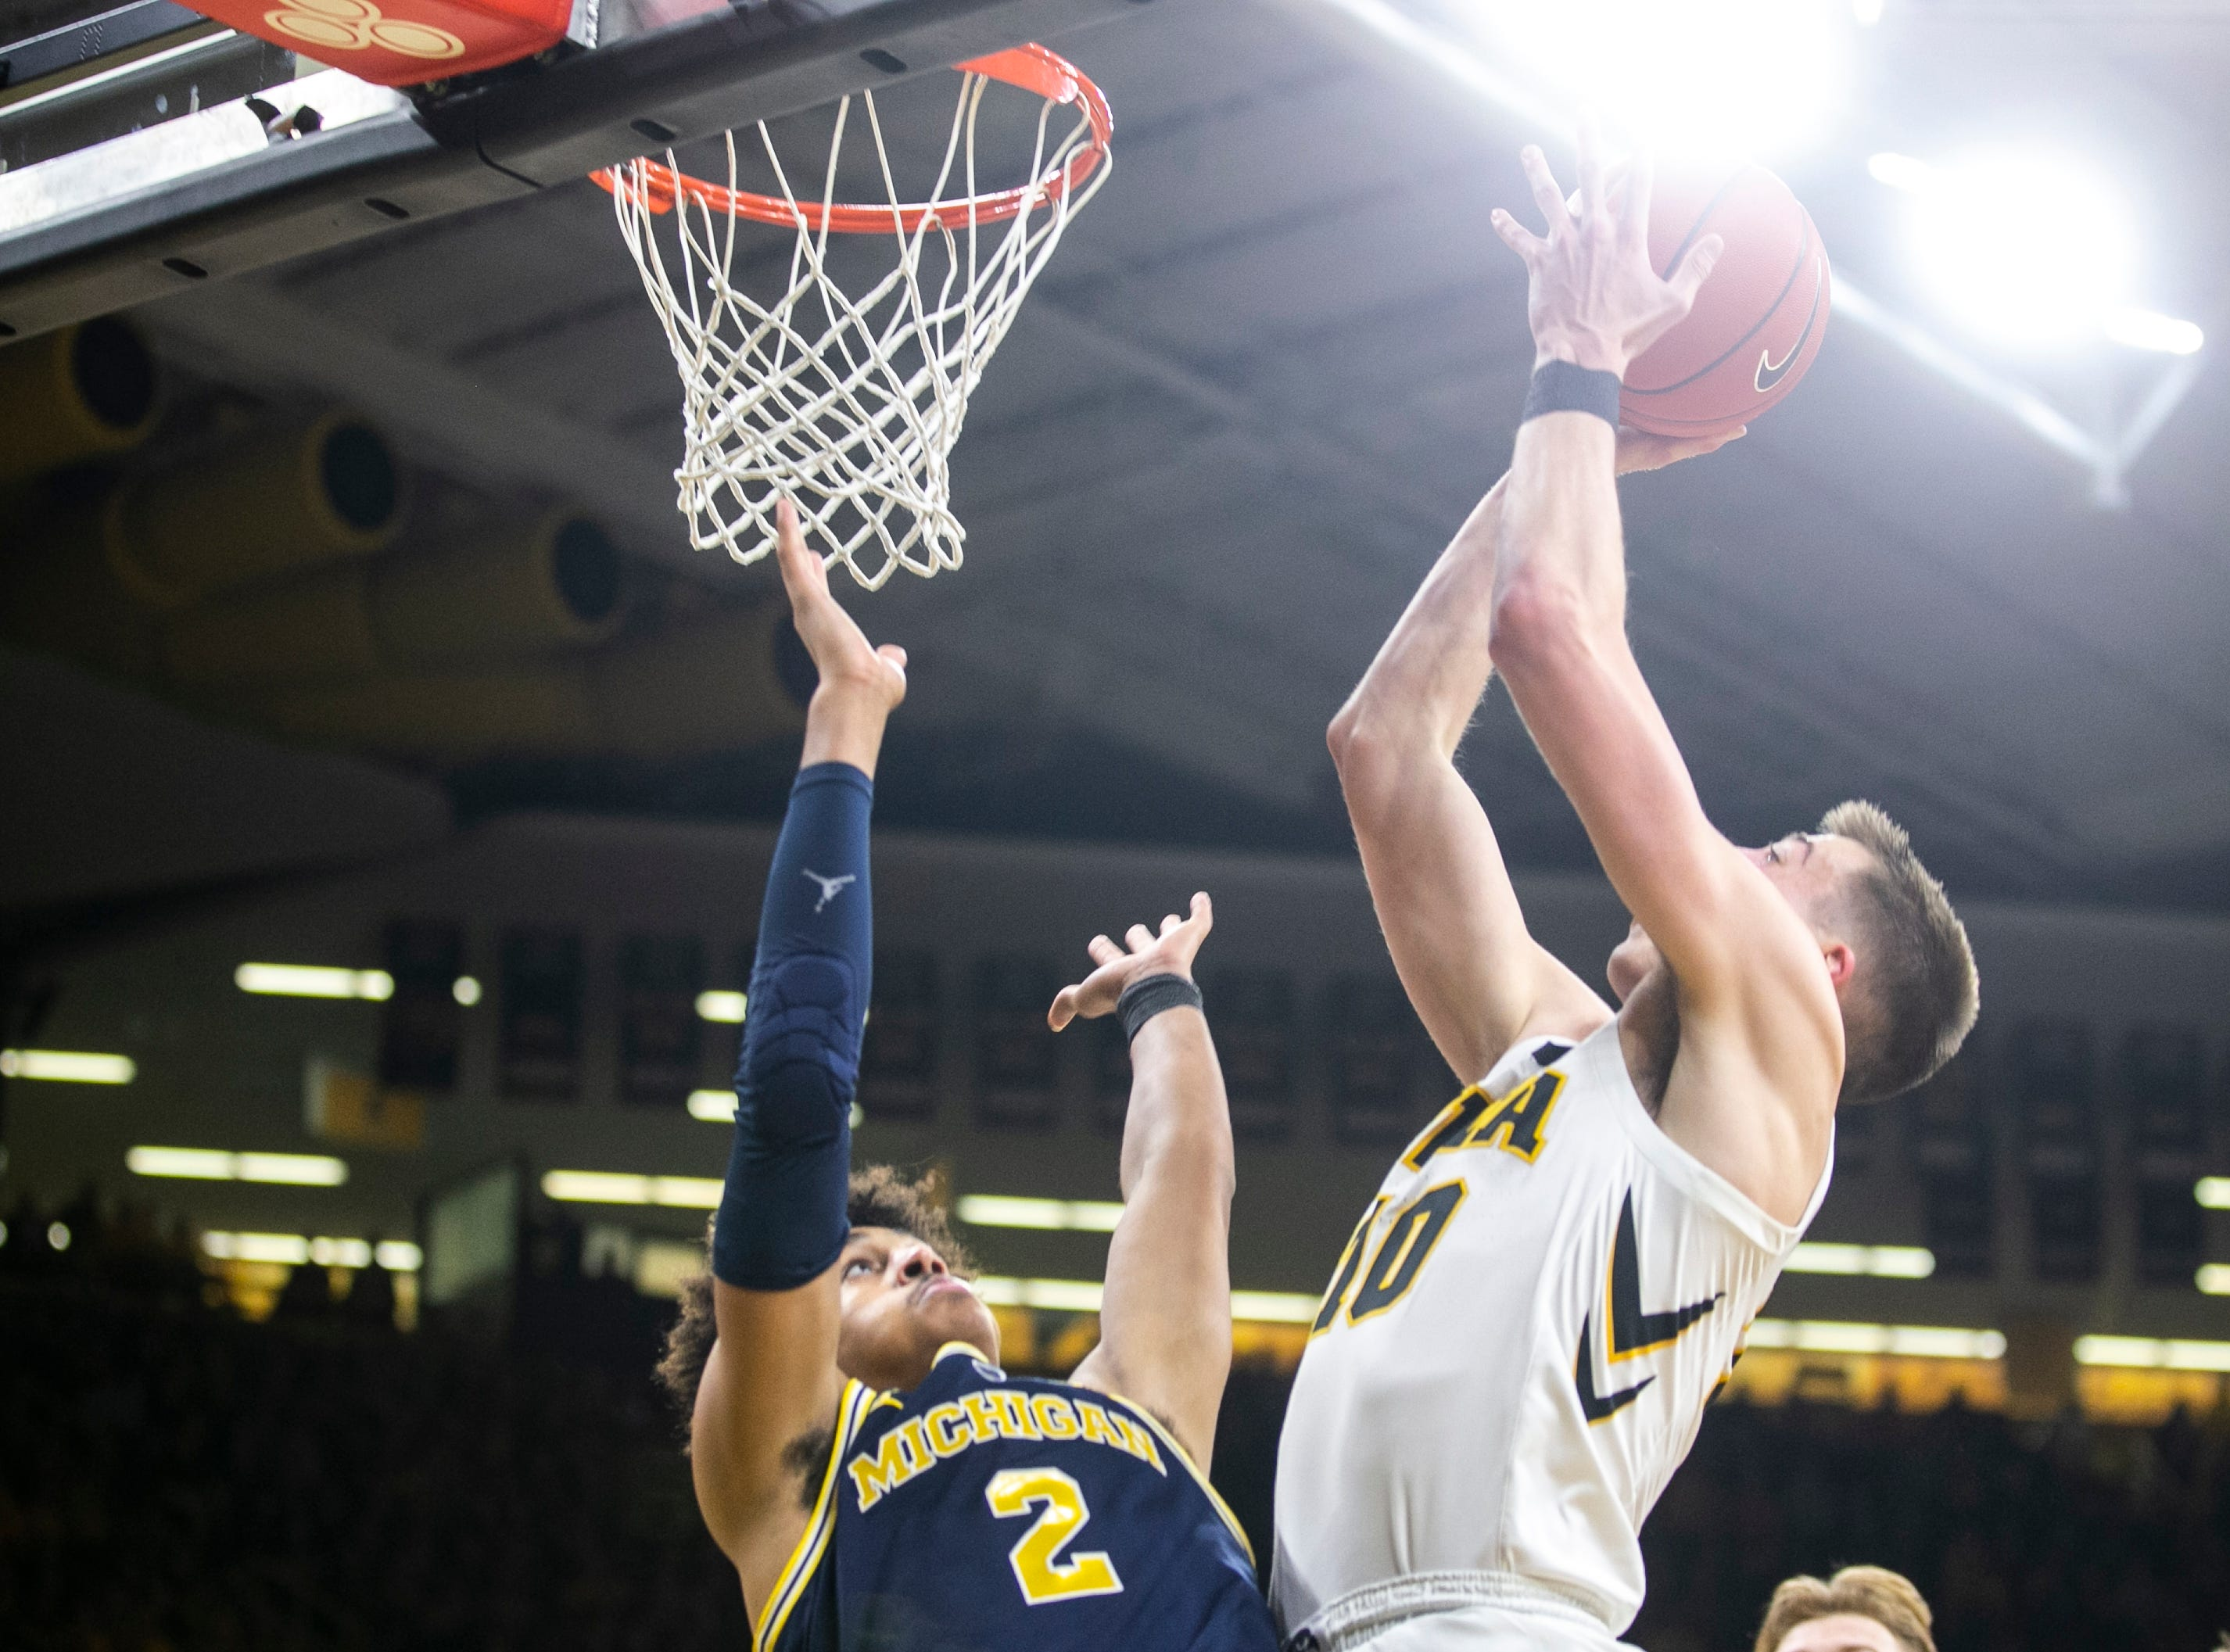 Iowa guard Joe Wieskamp (10) makes a layup while Michigan guard Jordan Poole (2) defends during a NCAA Big Ten Conference men's basketball game on Friday, Feb. 1, 2019, at Carver-Hawkeye Arena in Iowa City, Iowa.